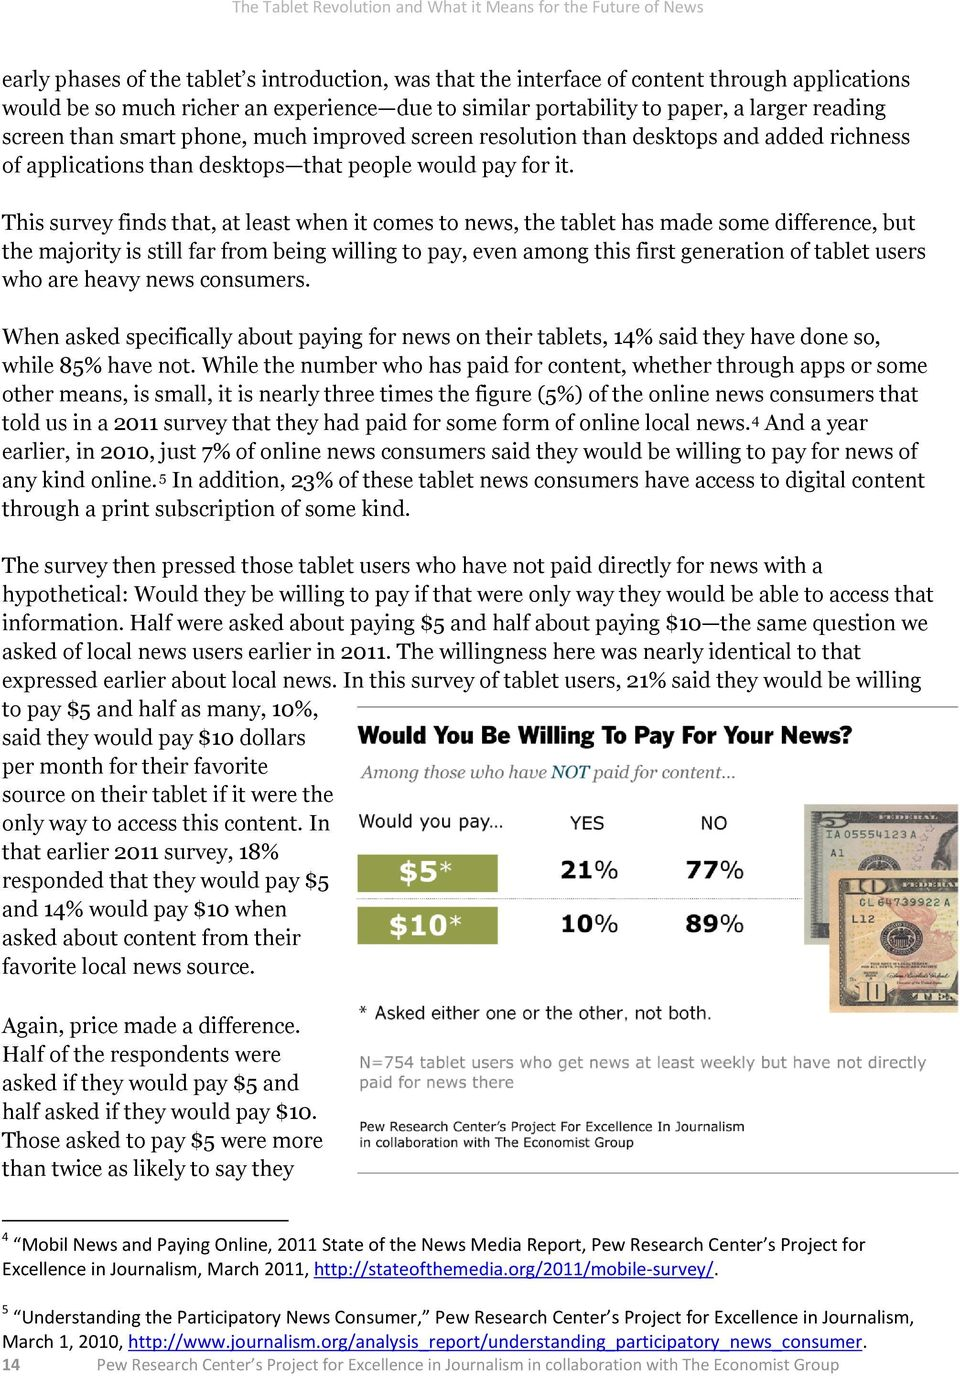 This survey finds that, at least when it comes to news, the tablet has made some difference, but the majority is still far from being willing to pay, even among this first generation of tablet users